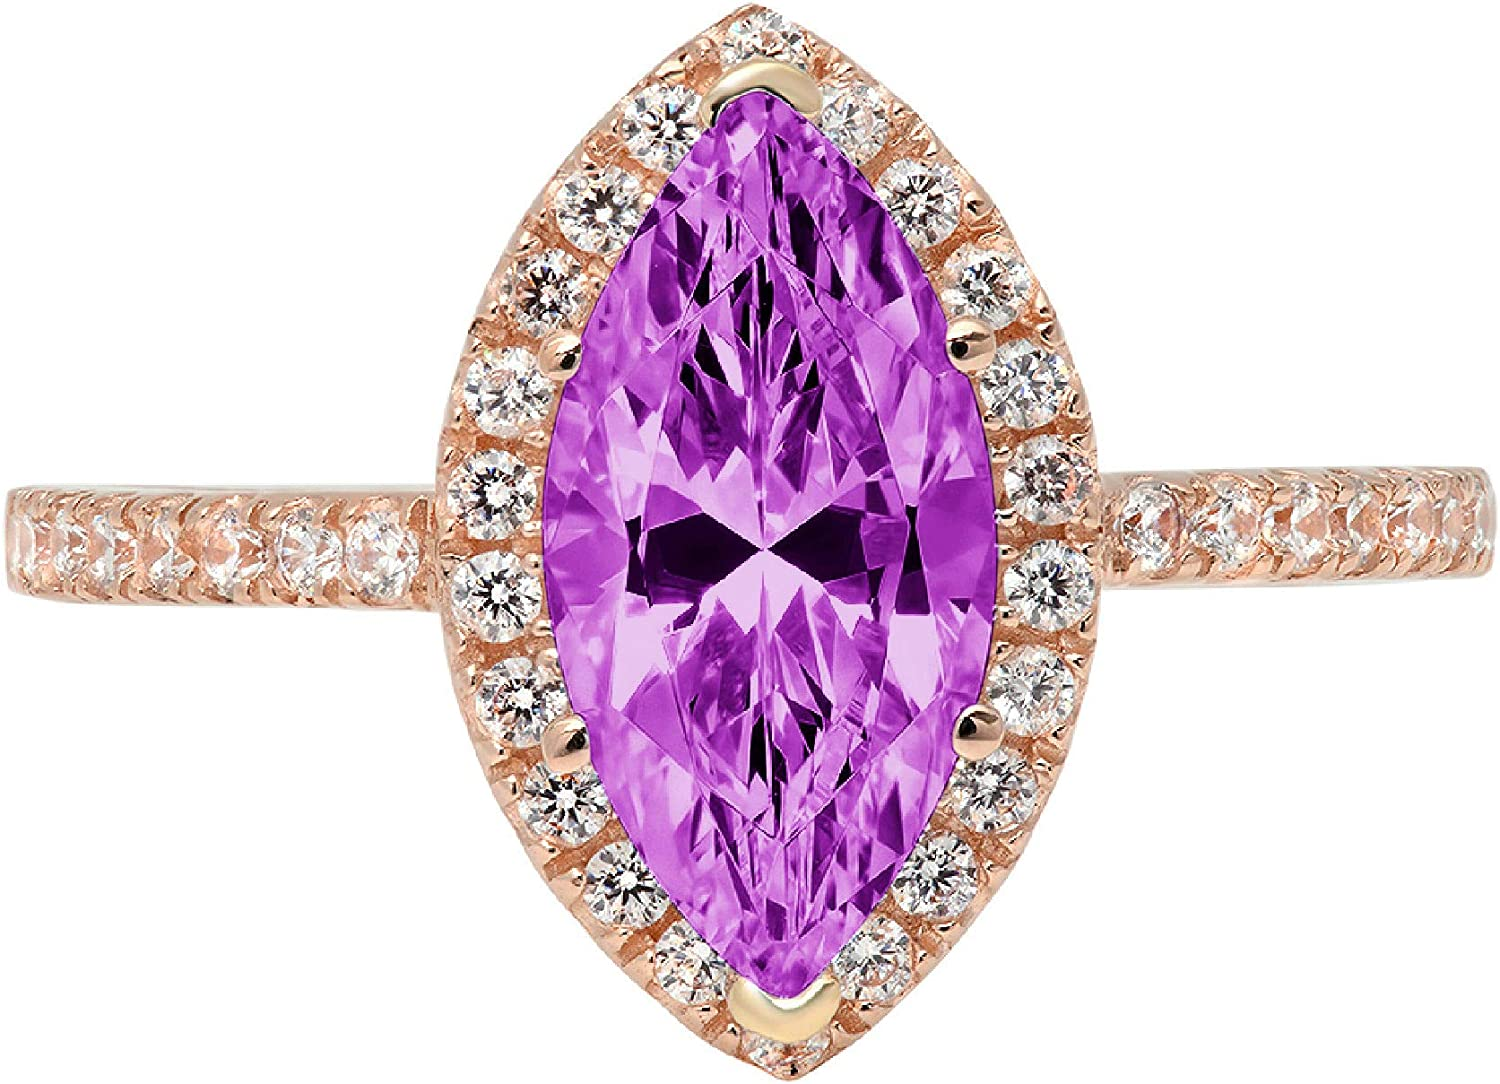 2.33 Brilliant Marquise Cut Solitaire with Accent Halo Flawless Ideal VVS1 Simulated Alexandrite Ideal Engagement Promise Anniversary Bridal Wedding Designer Ring 14k Rose Gold